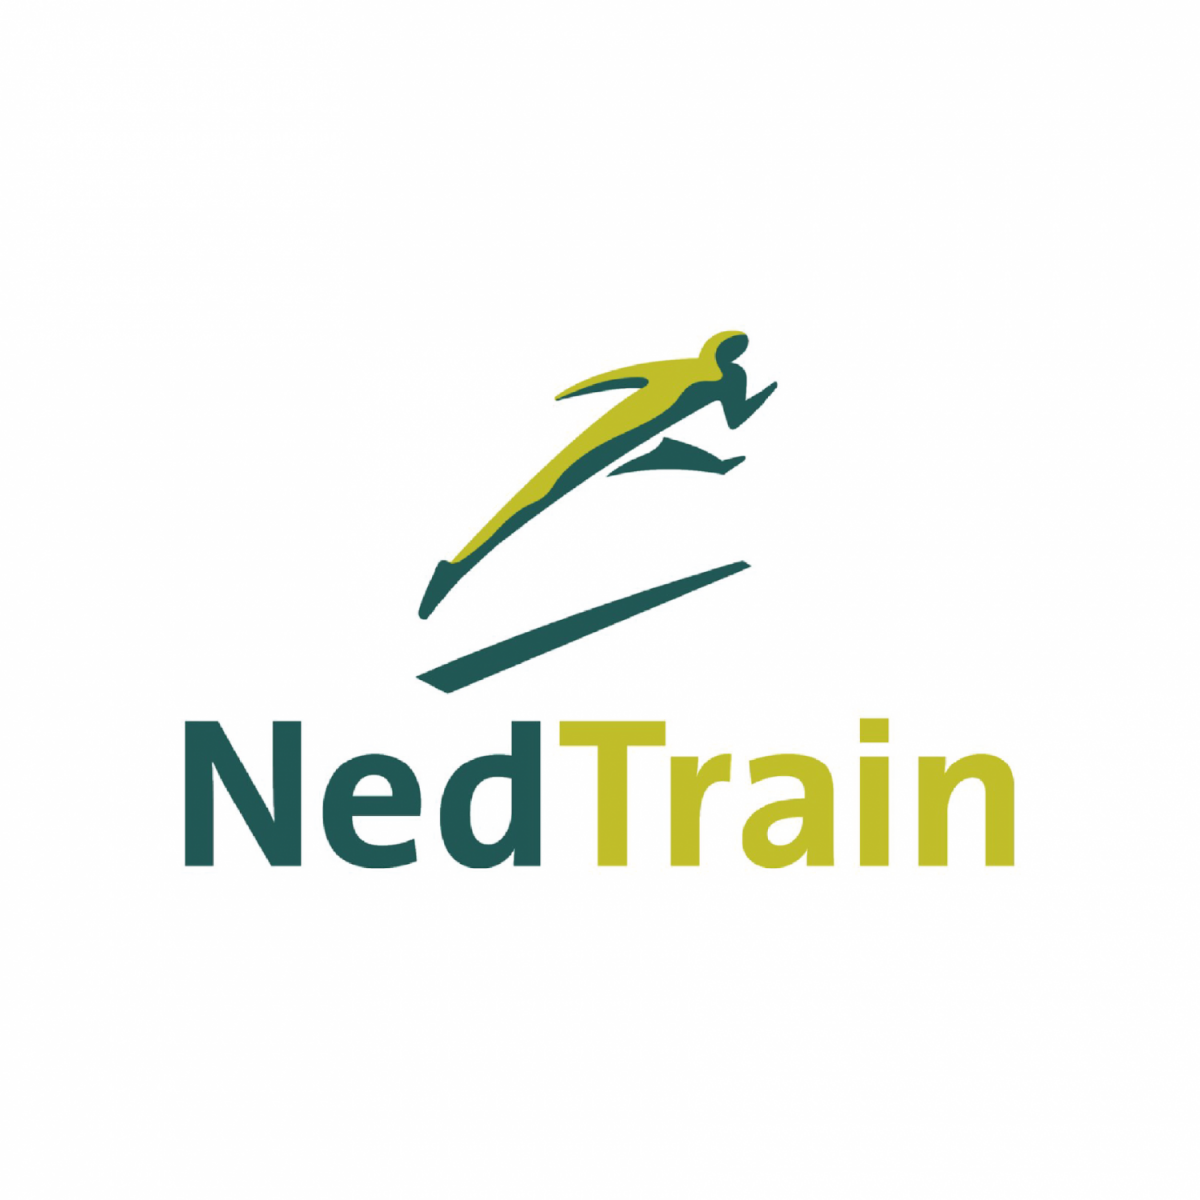 Referenz NedTrain data e1540990907377 - Homepagina